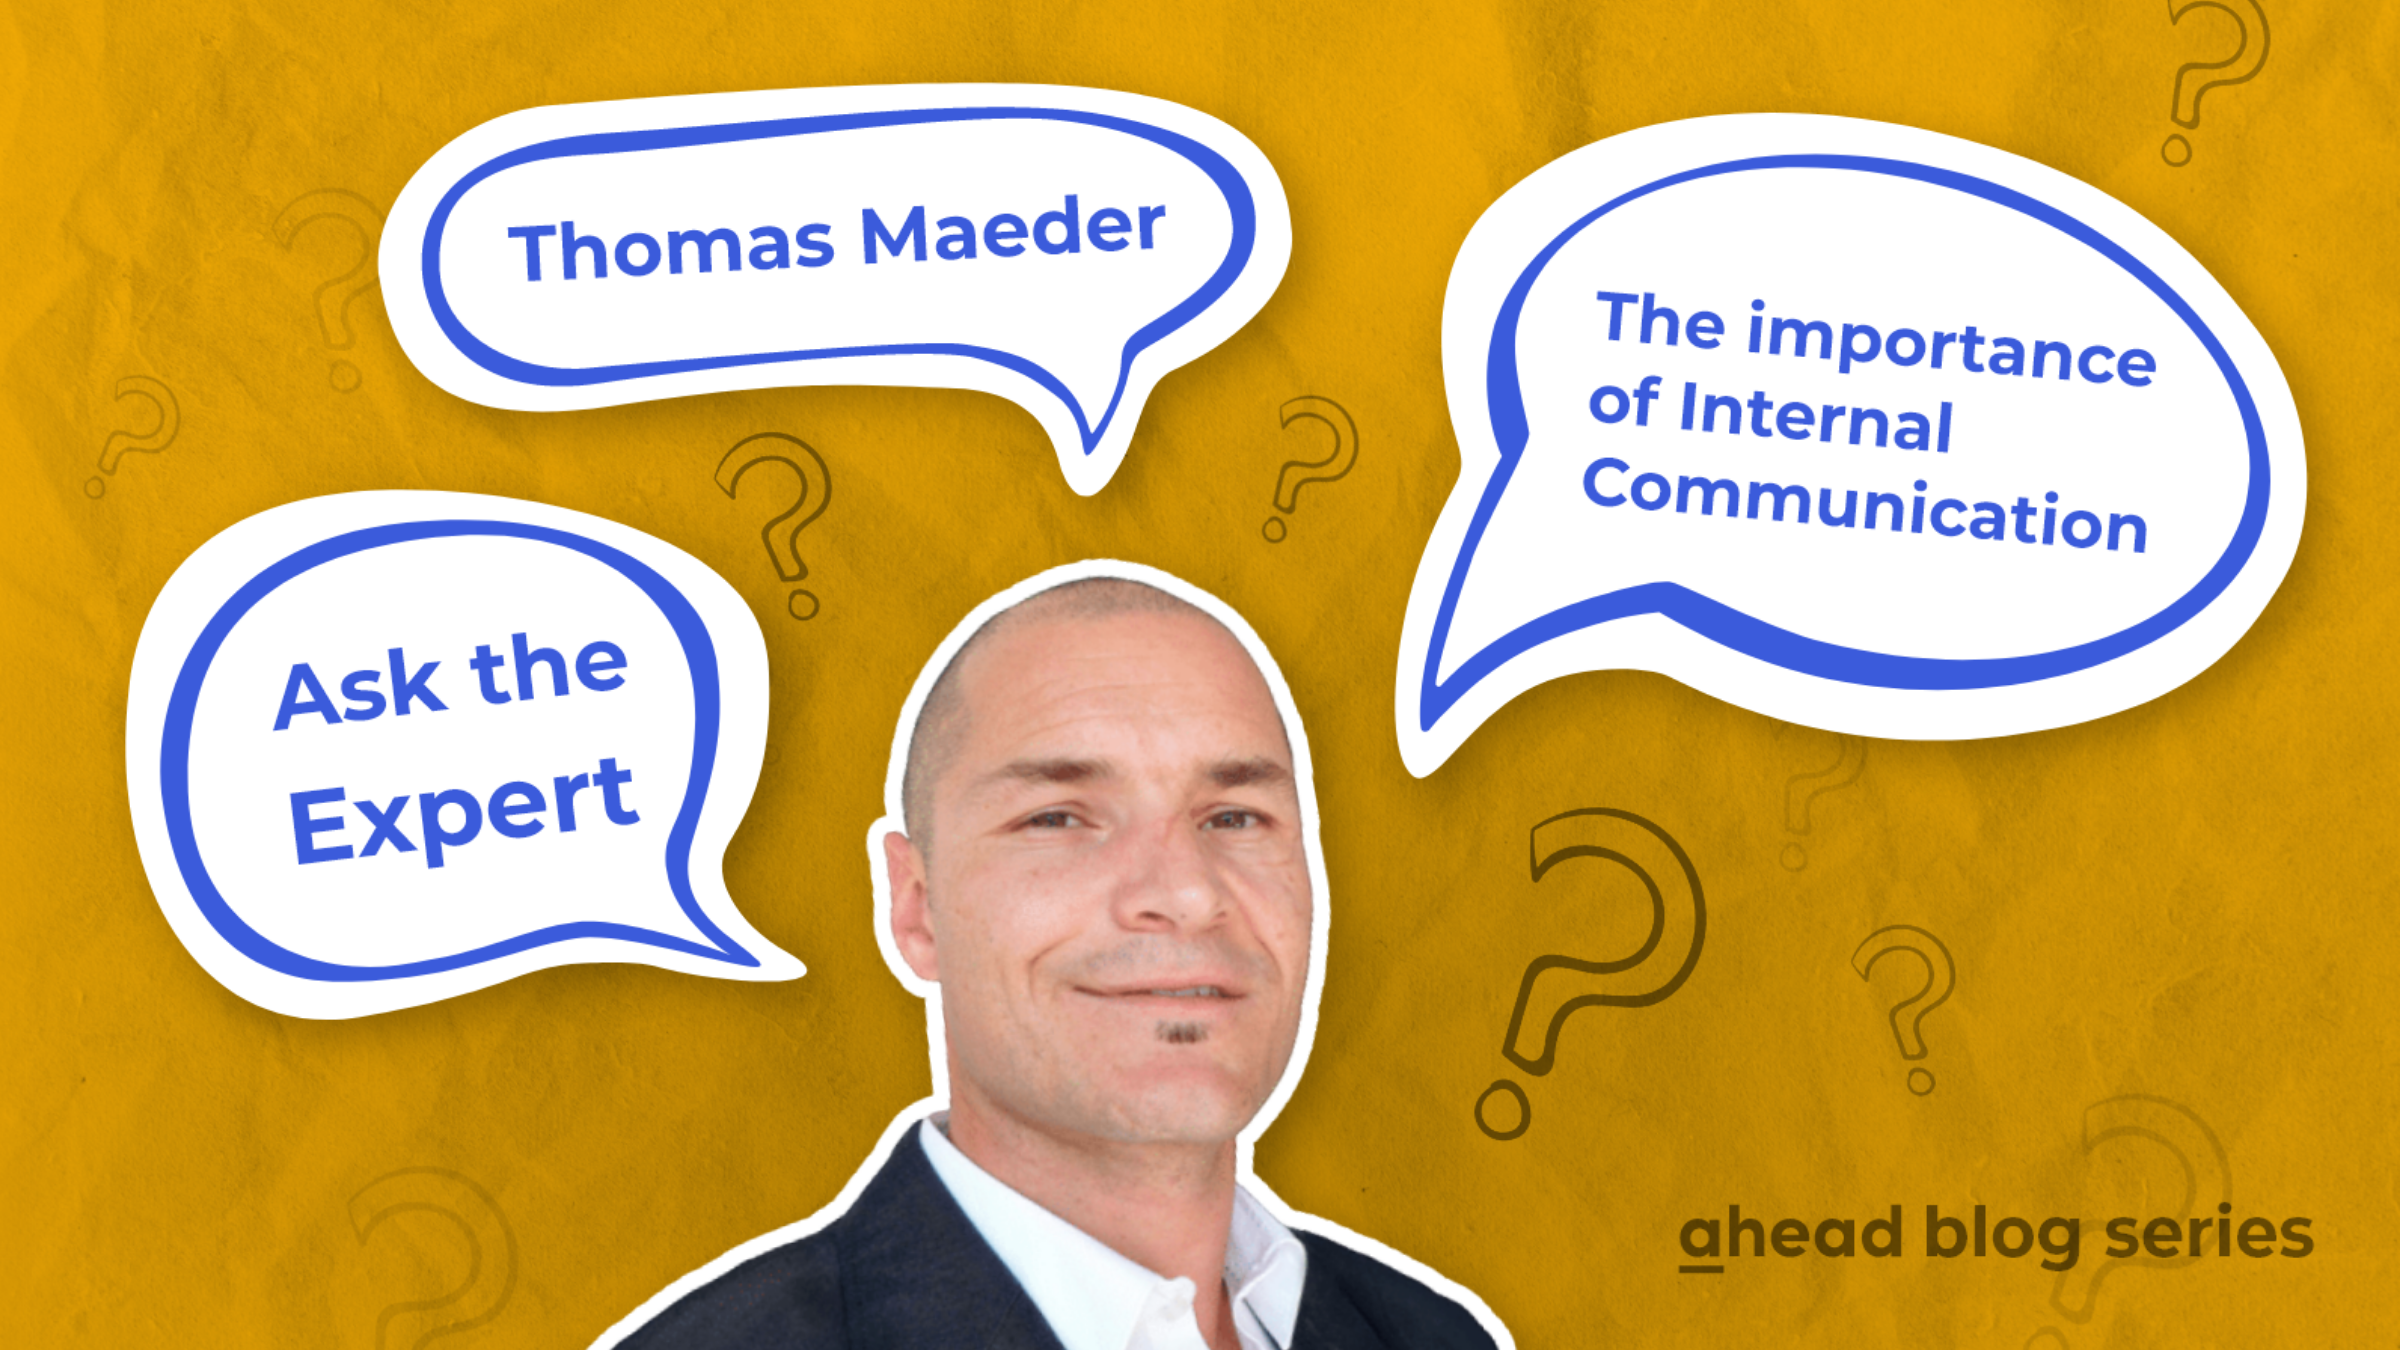 Ask the Expert - Thomas Maeder